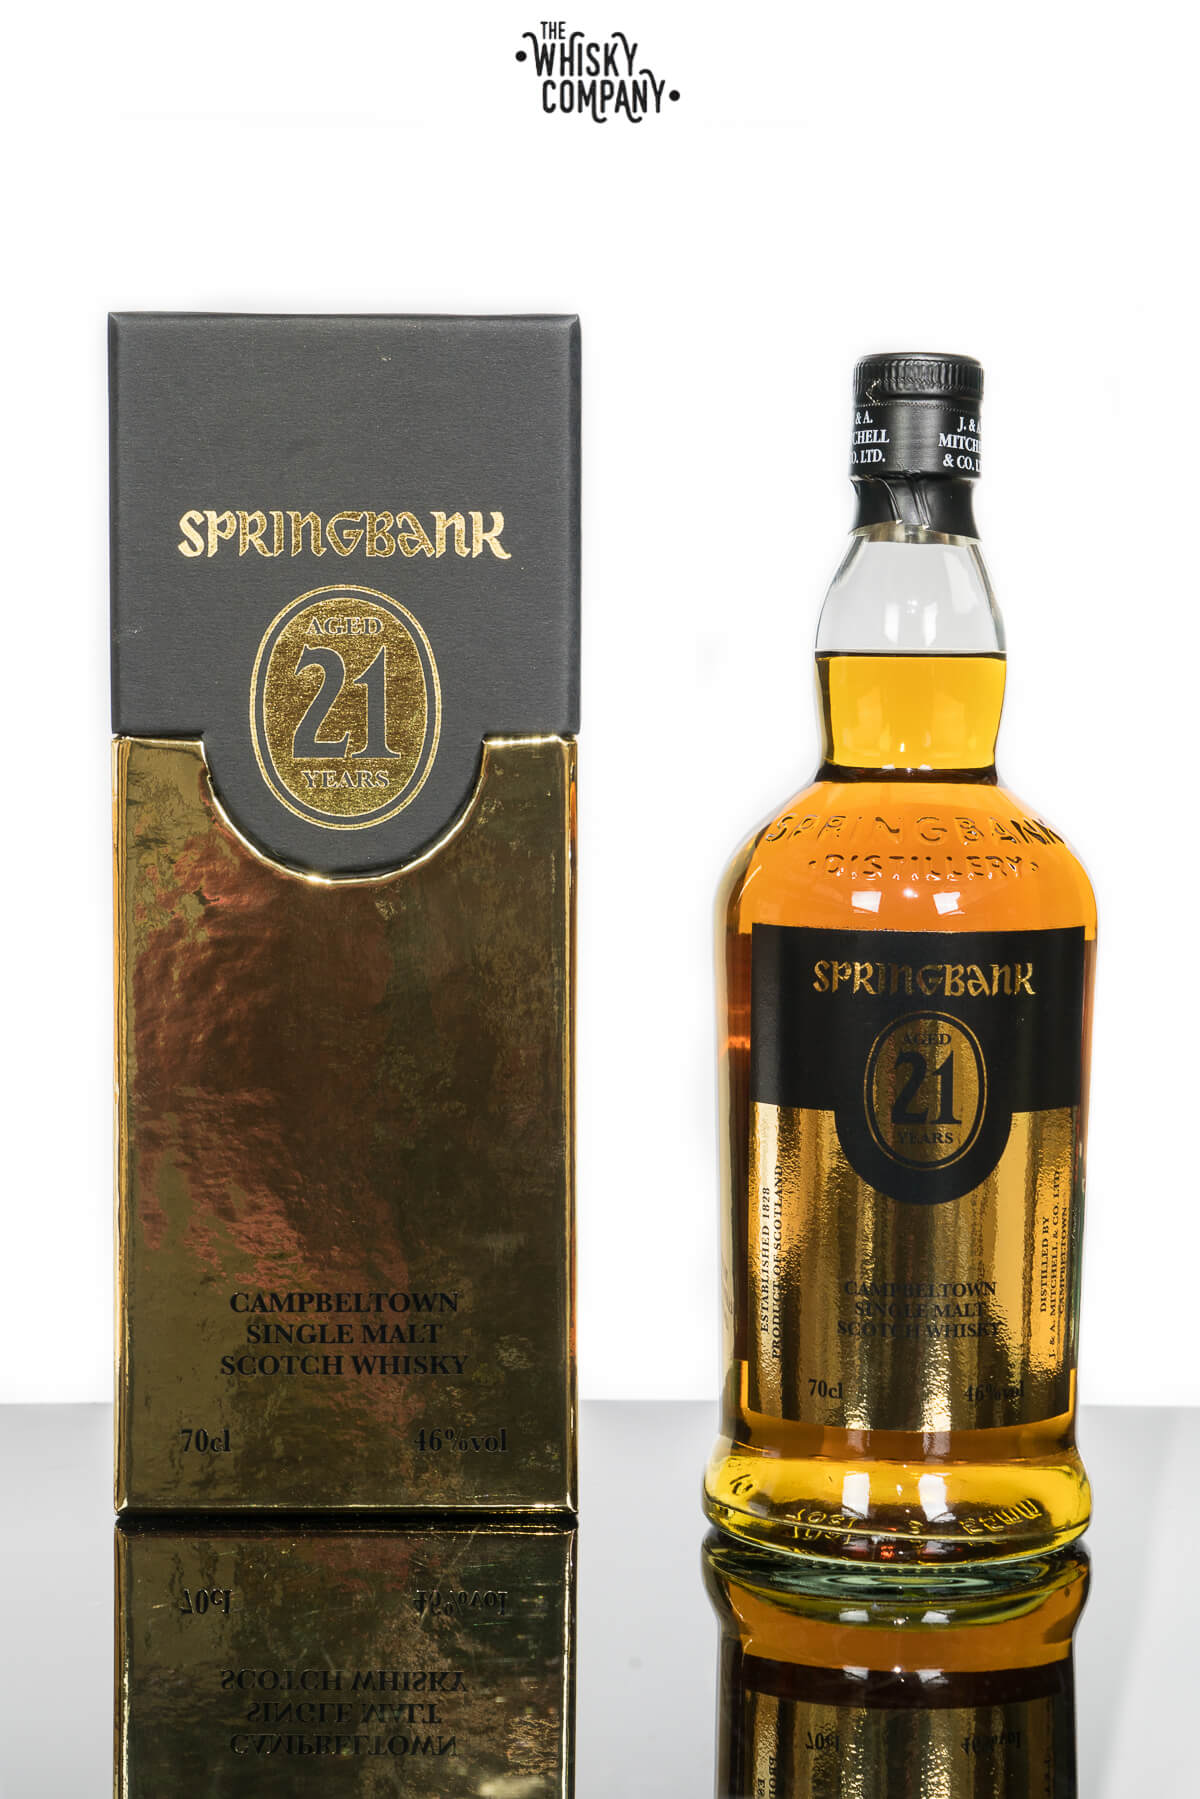 Springbank 21 Years Old Campbeltown Single Malt Scotch Whisky (700ml)